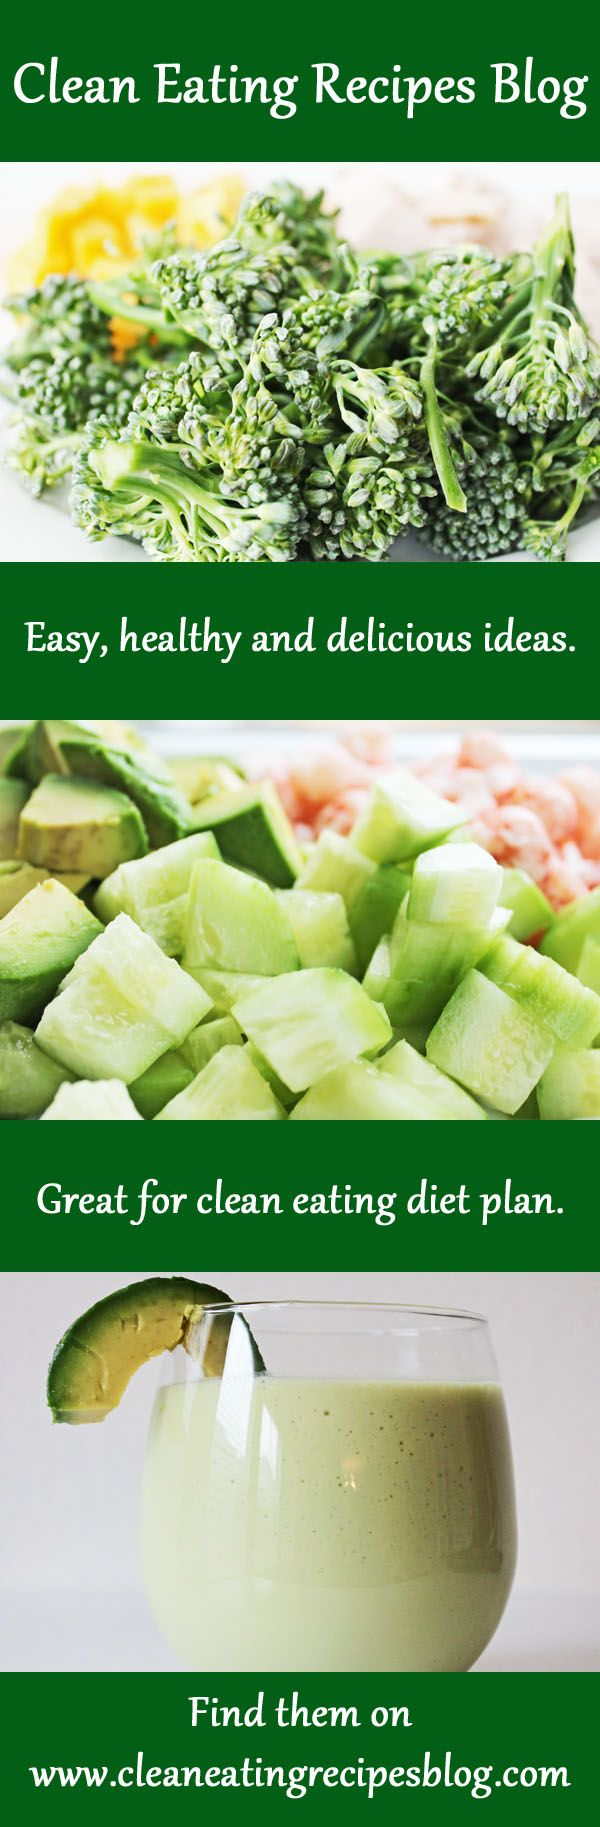 Some people detox to lose weight if you're struggling to lose weight detoxing is a good way